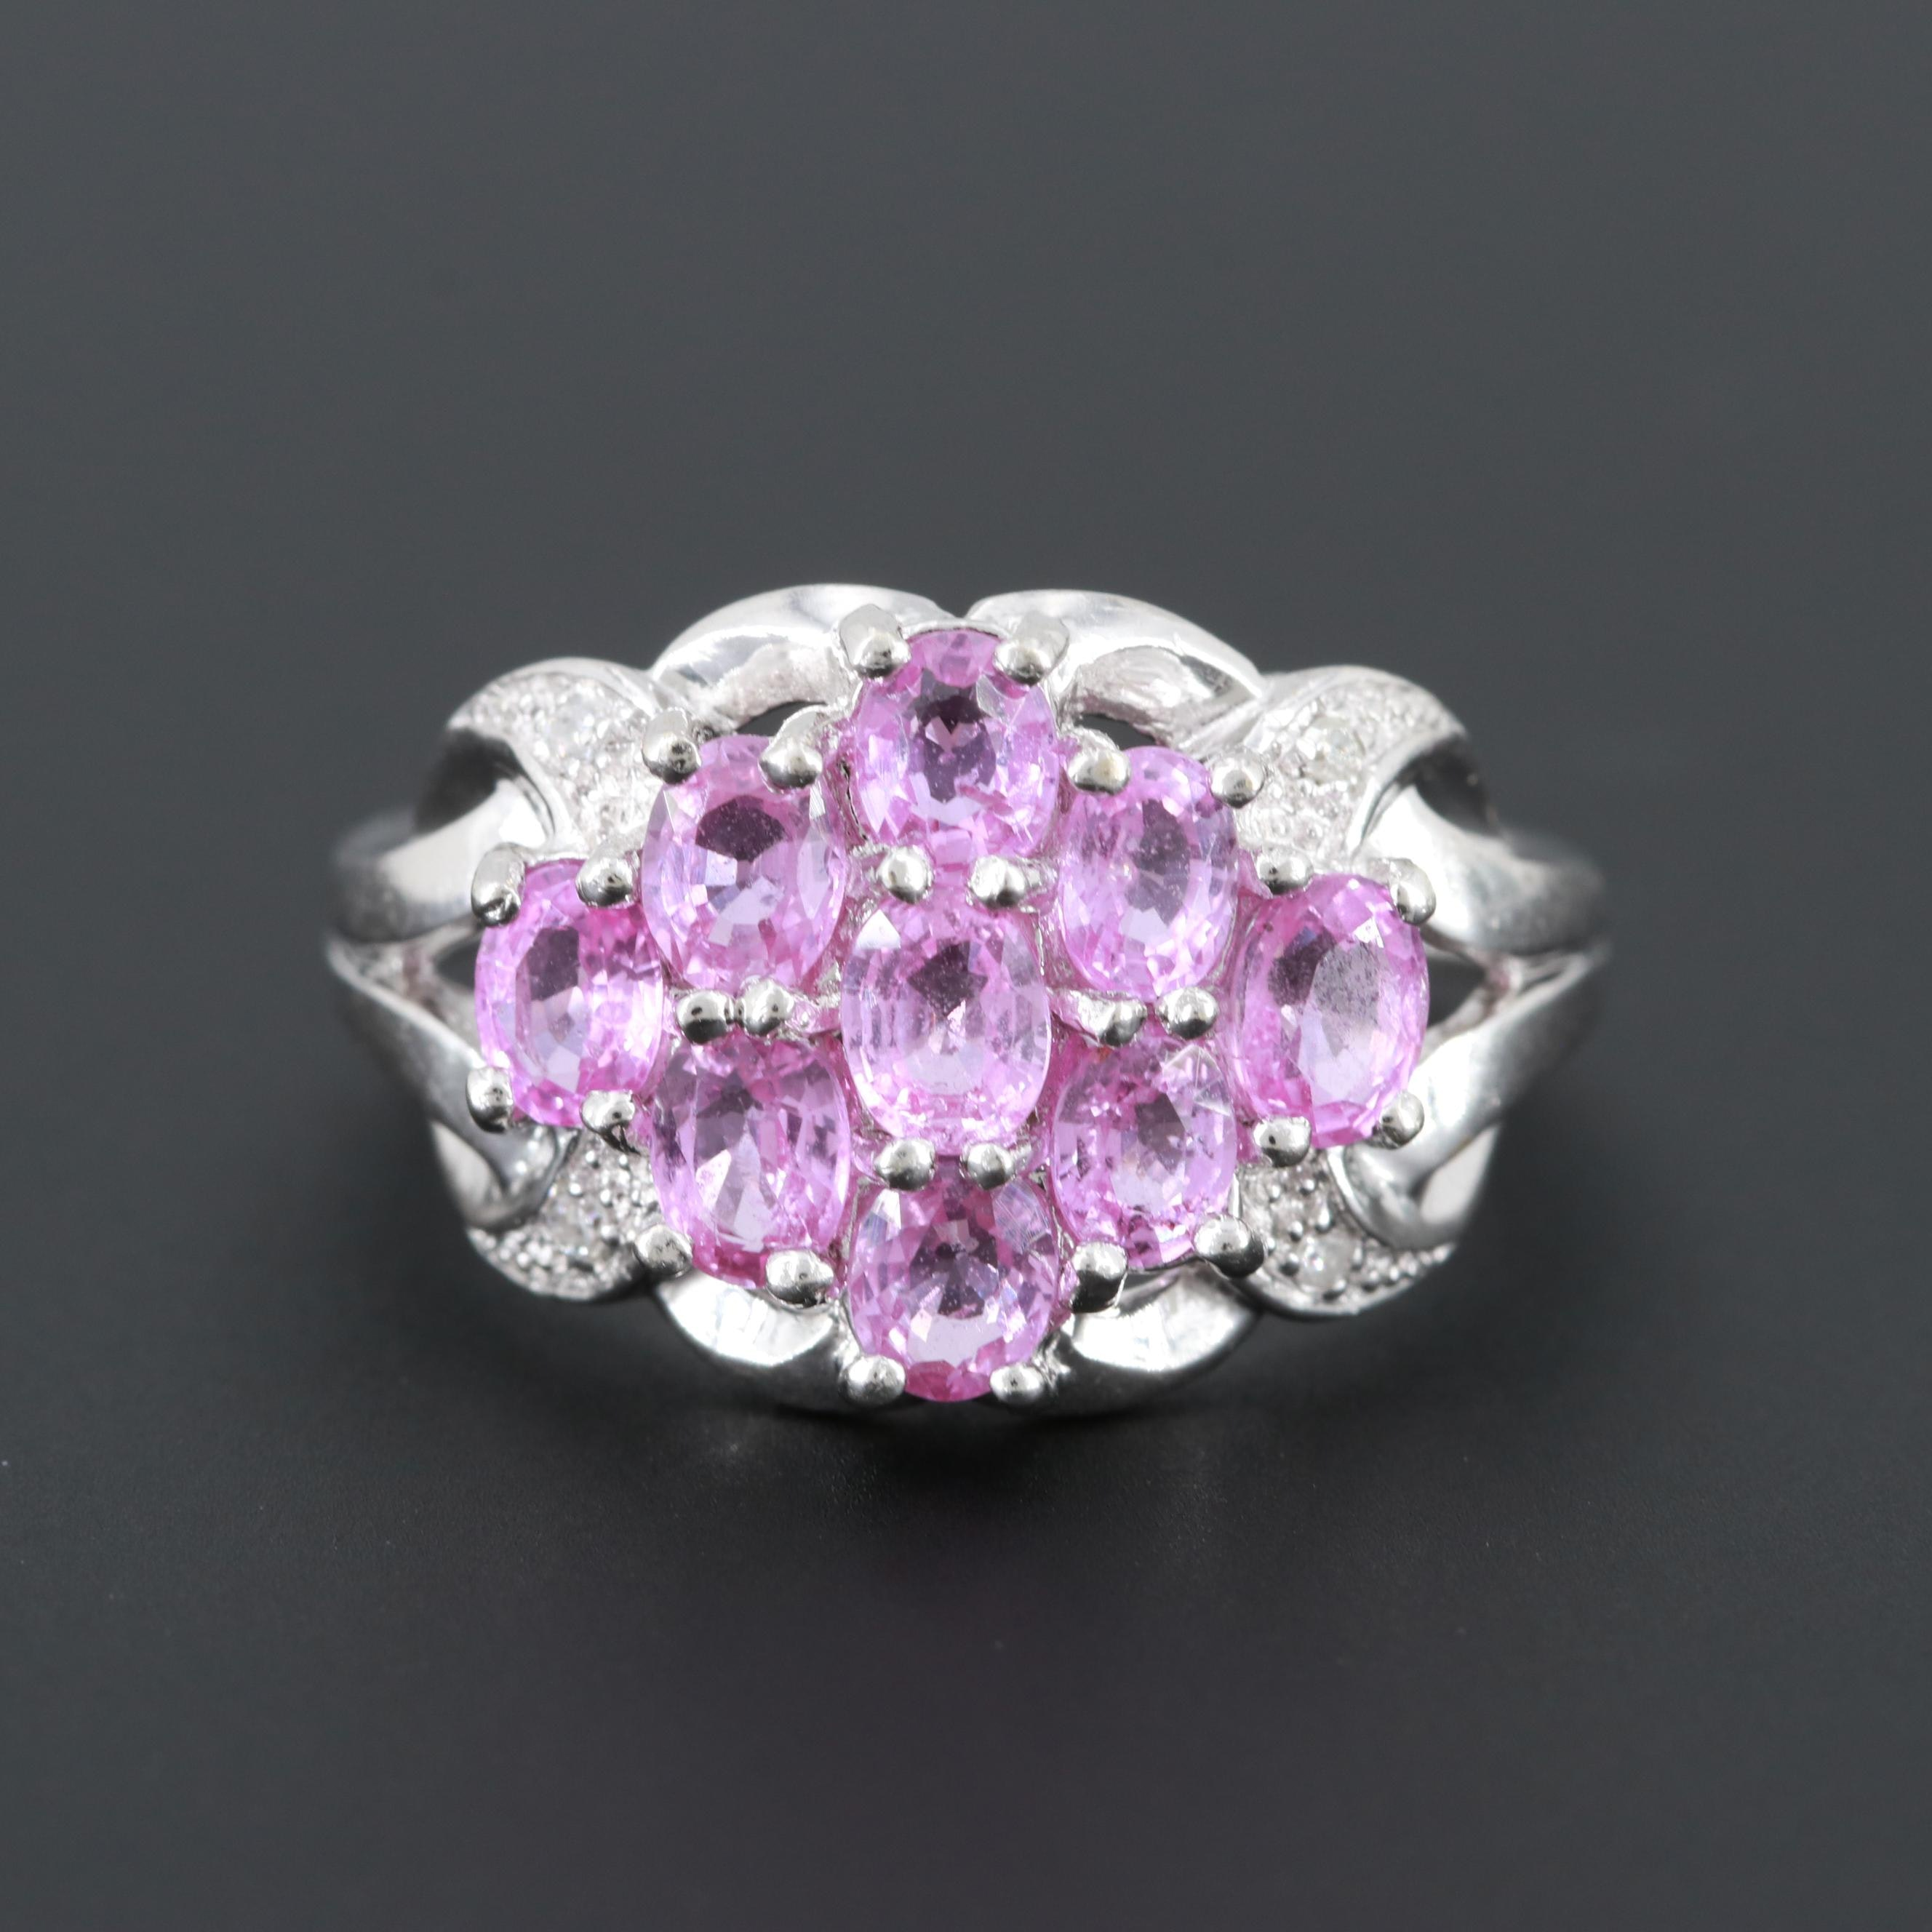 10K White Gold Pink Sapphire and Diamond Cluster Ring